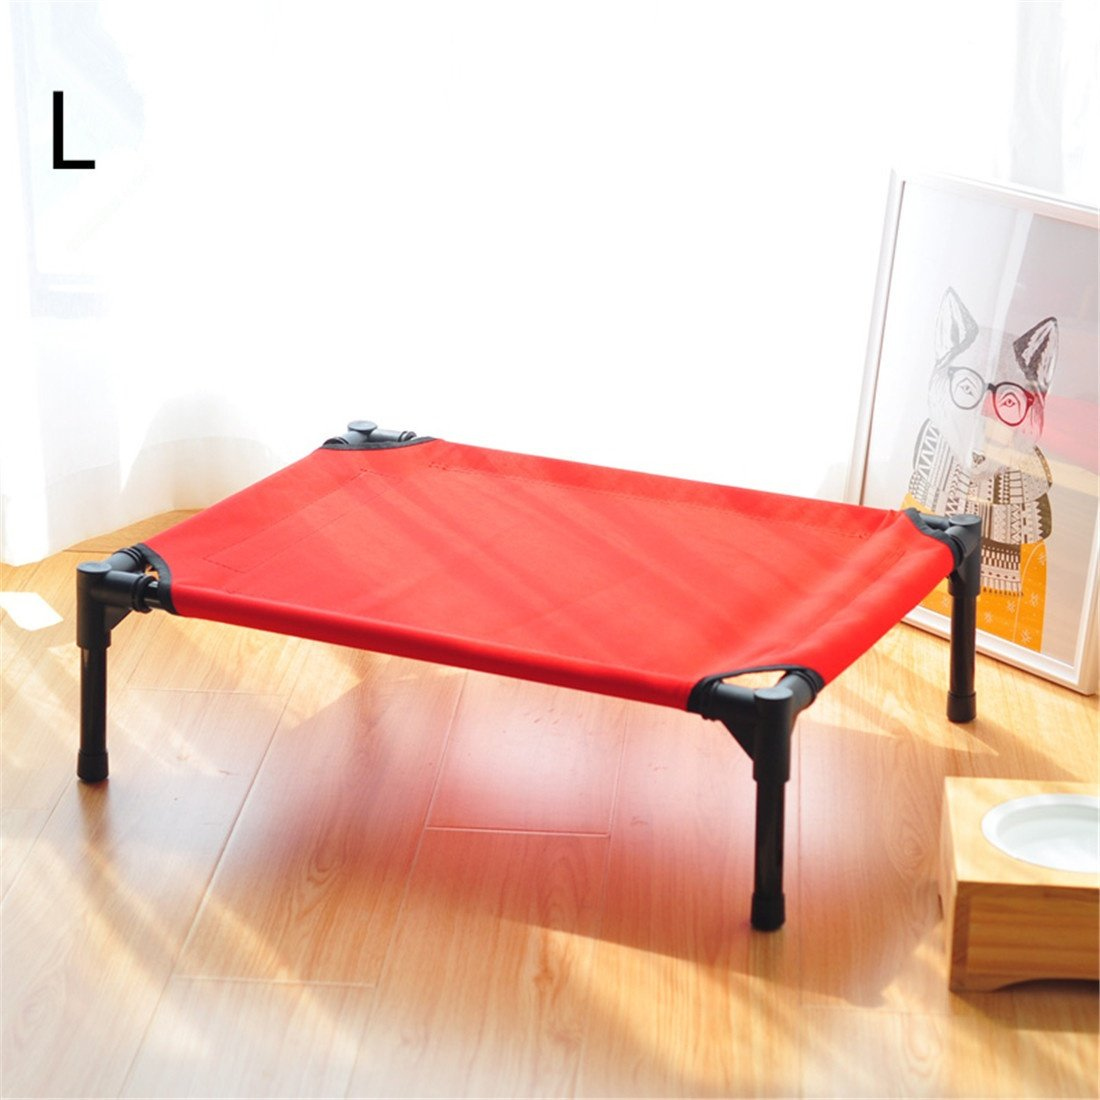 L CHWWO Elevated pet Bed Assembly Portable Outdoor Camping Raise The Dog Bed Anti-Rust Steel Pipe Durable Oxford Cloth Removable and Washable, L